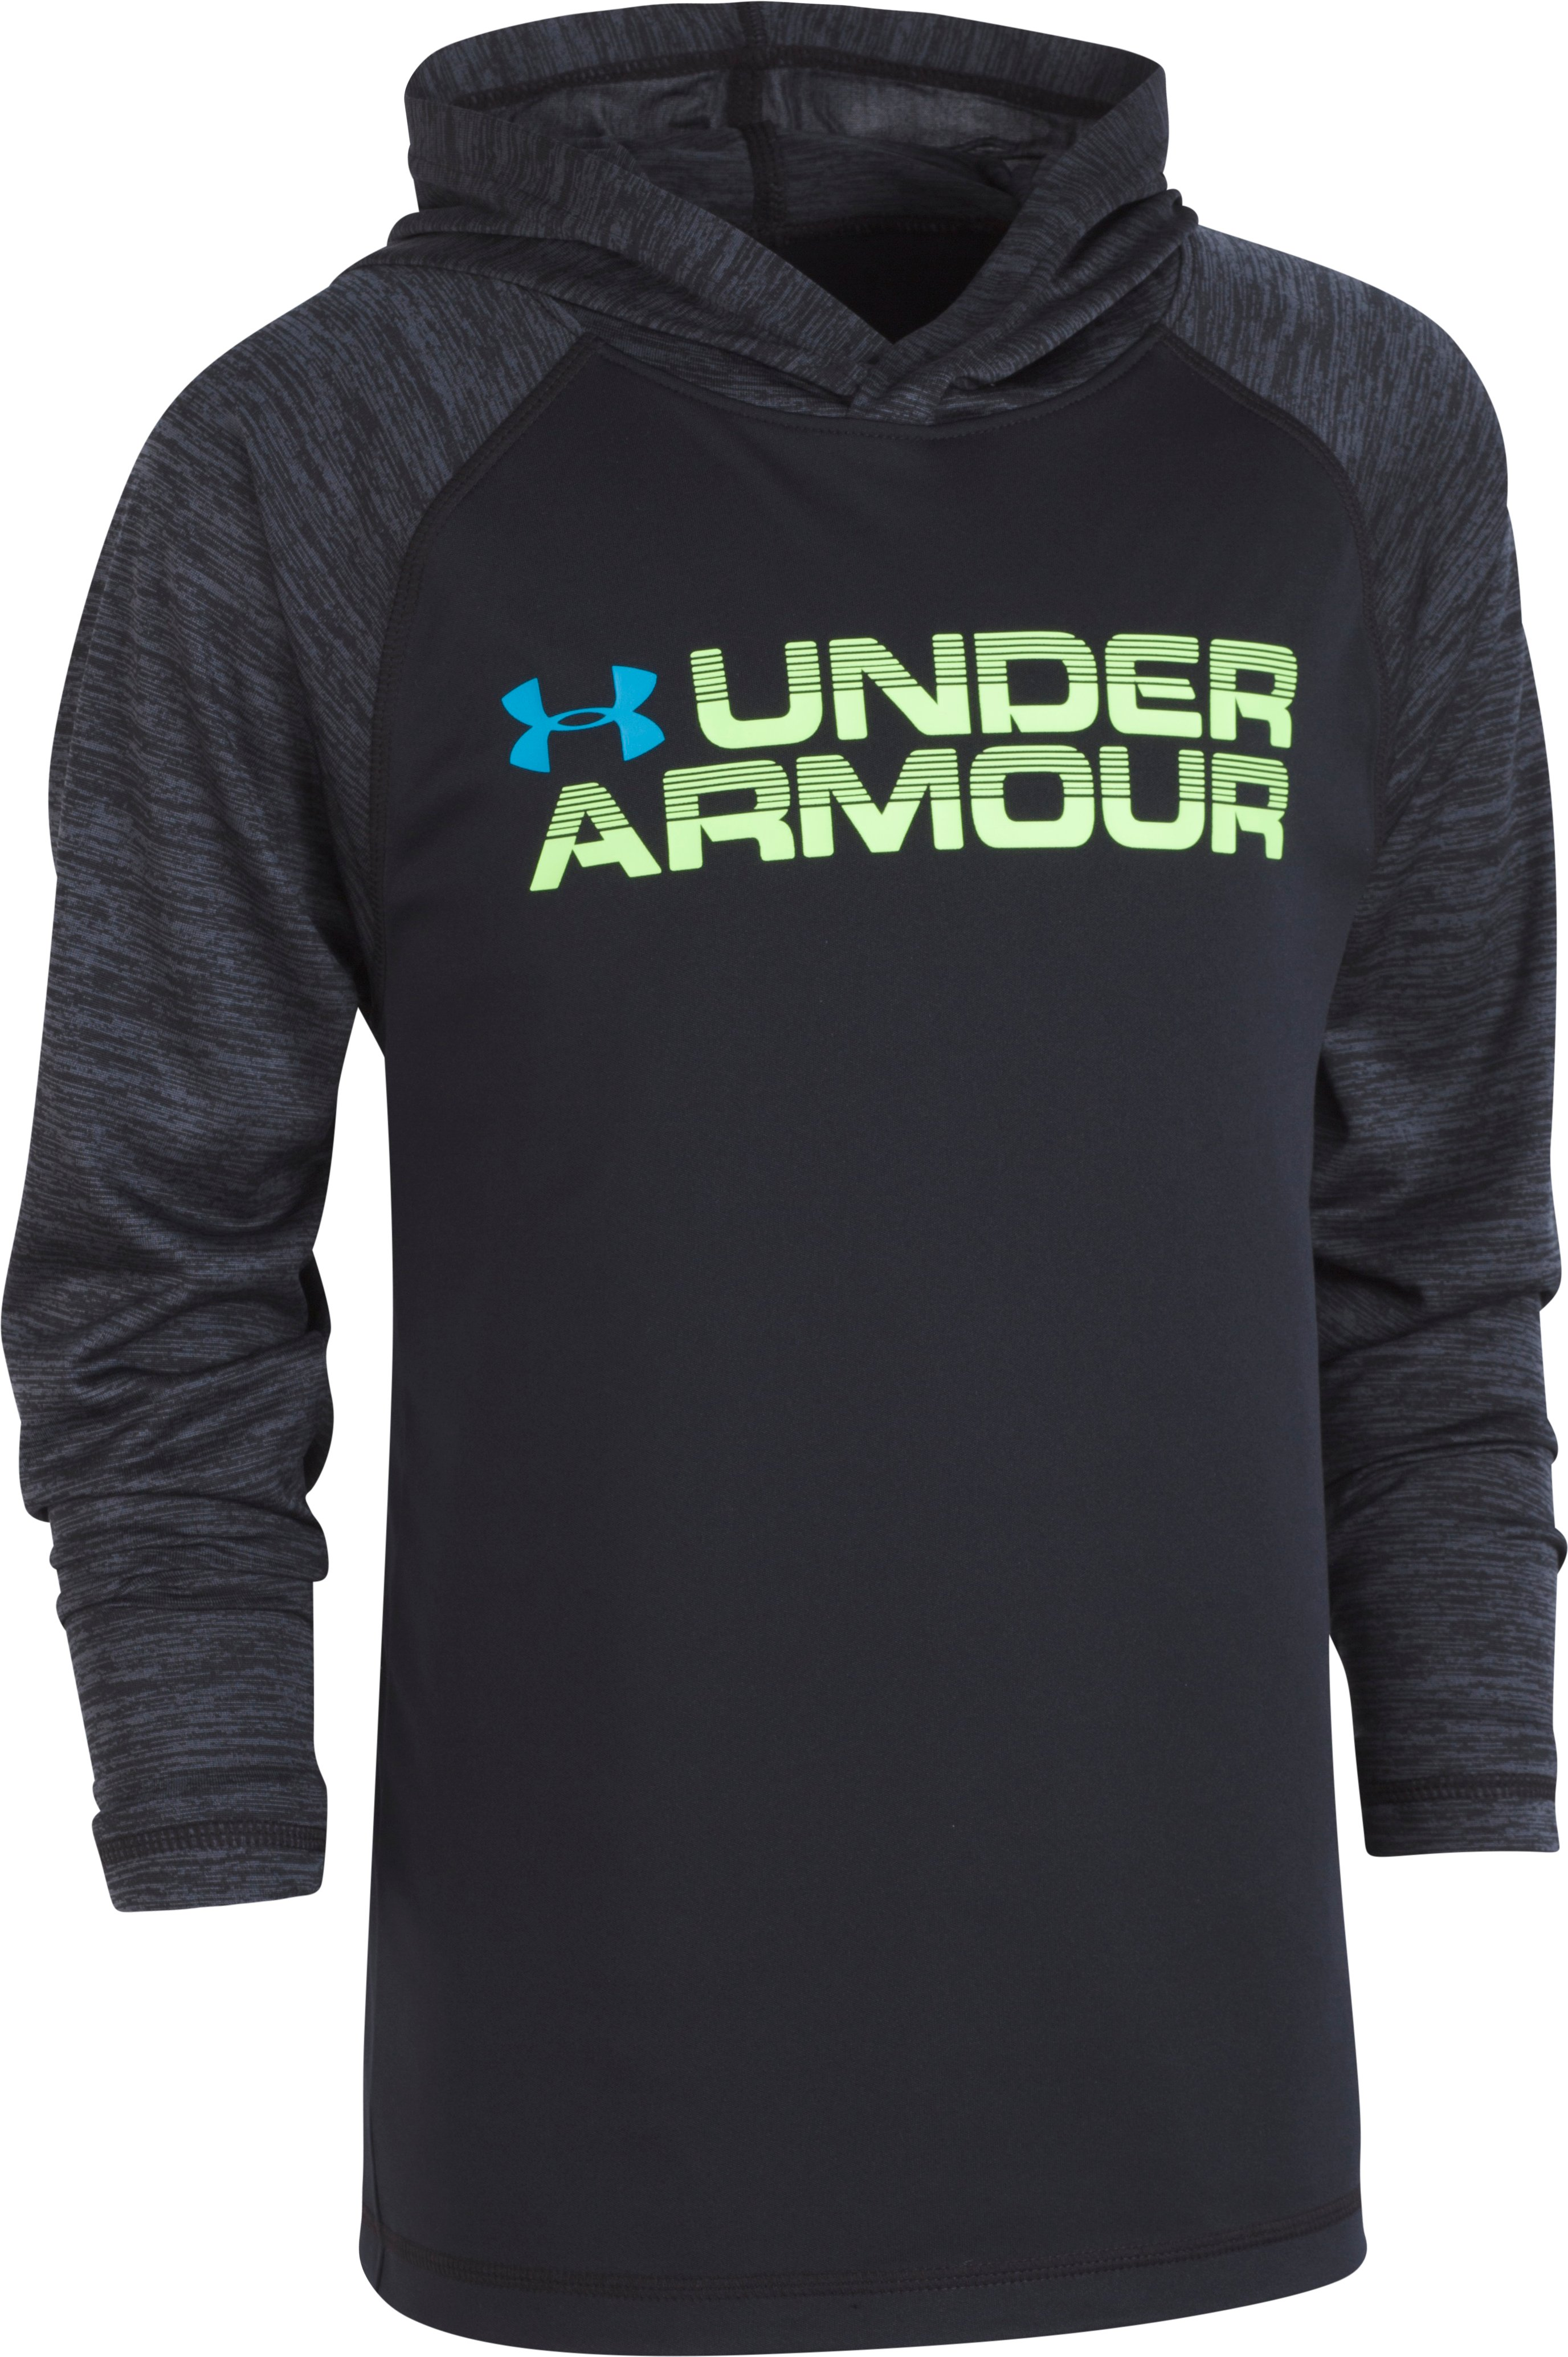 Boys' Pre-School UA Wordmark Twist Tech Hoodie, Black , zoomed